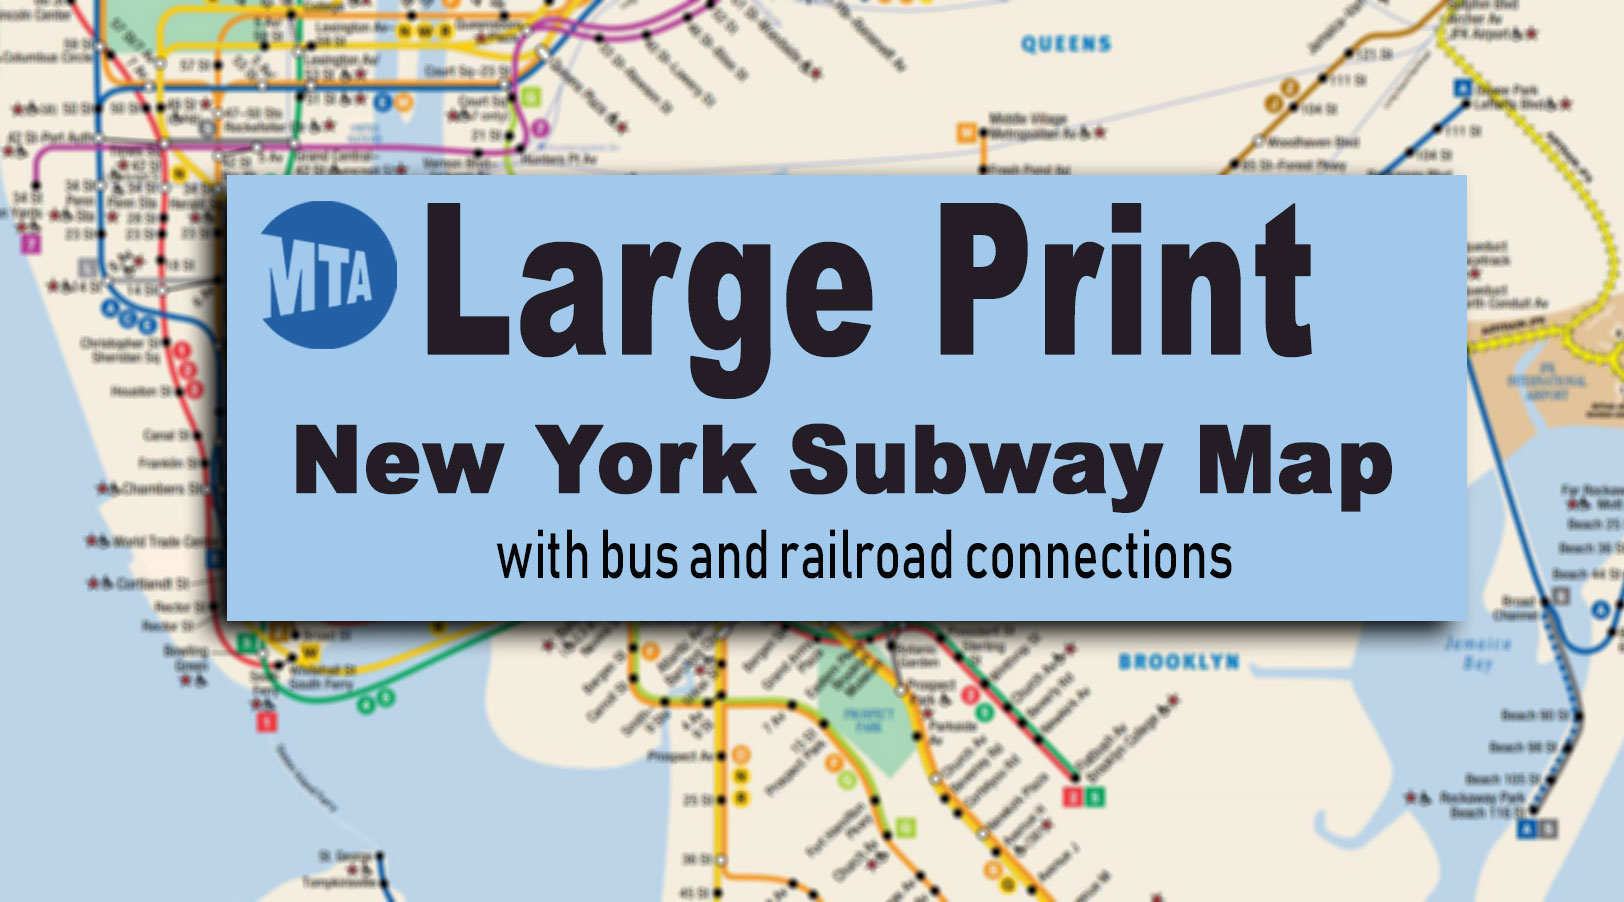 Subway Map Nyc Mta Download.New York City Subway Map For Large Print Viewing And Printing